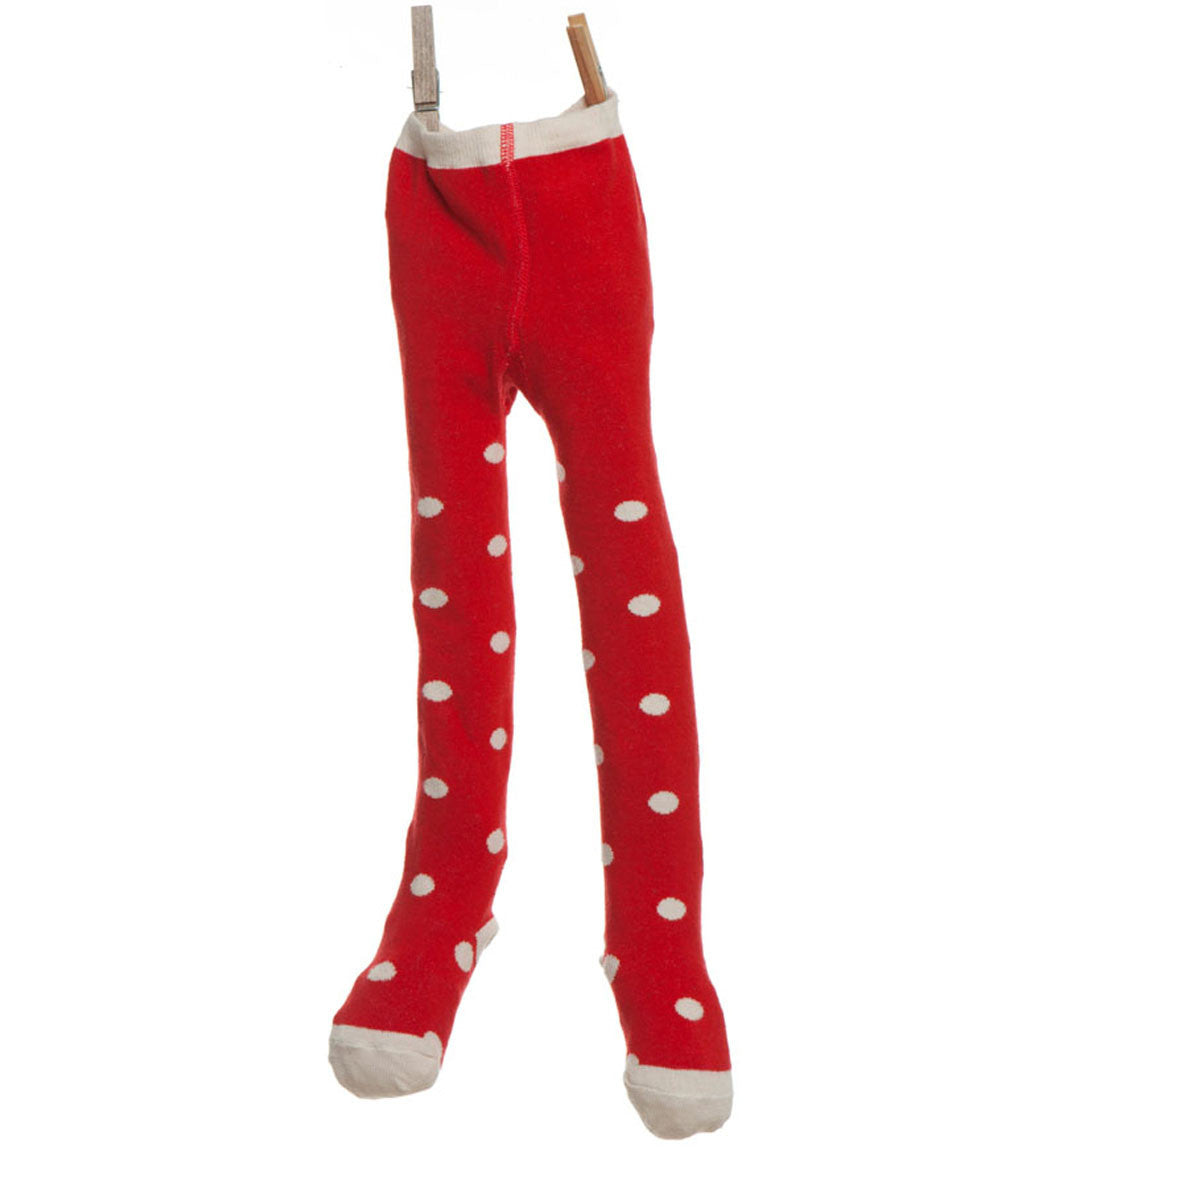 Children's Tights - Red/Cream Spotty